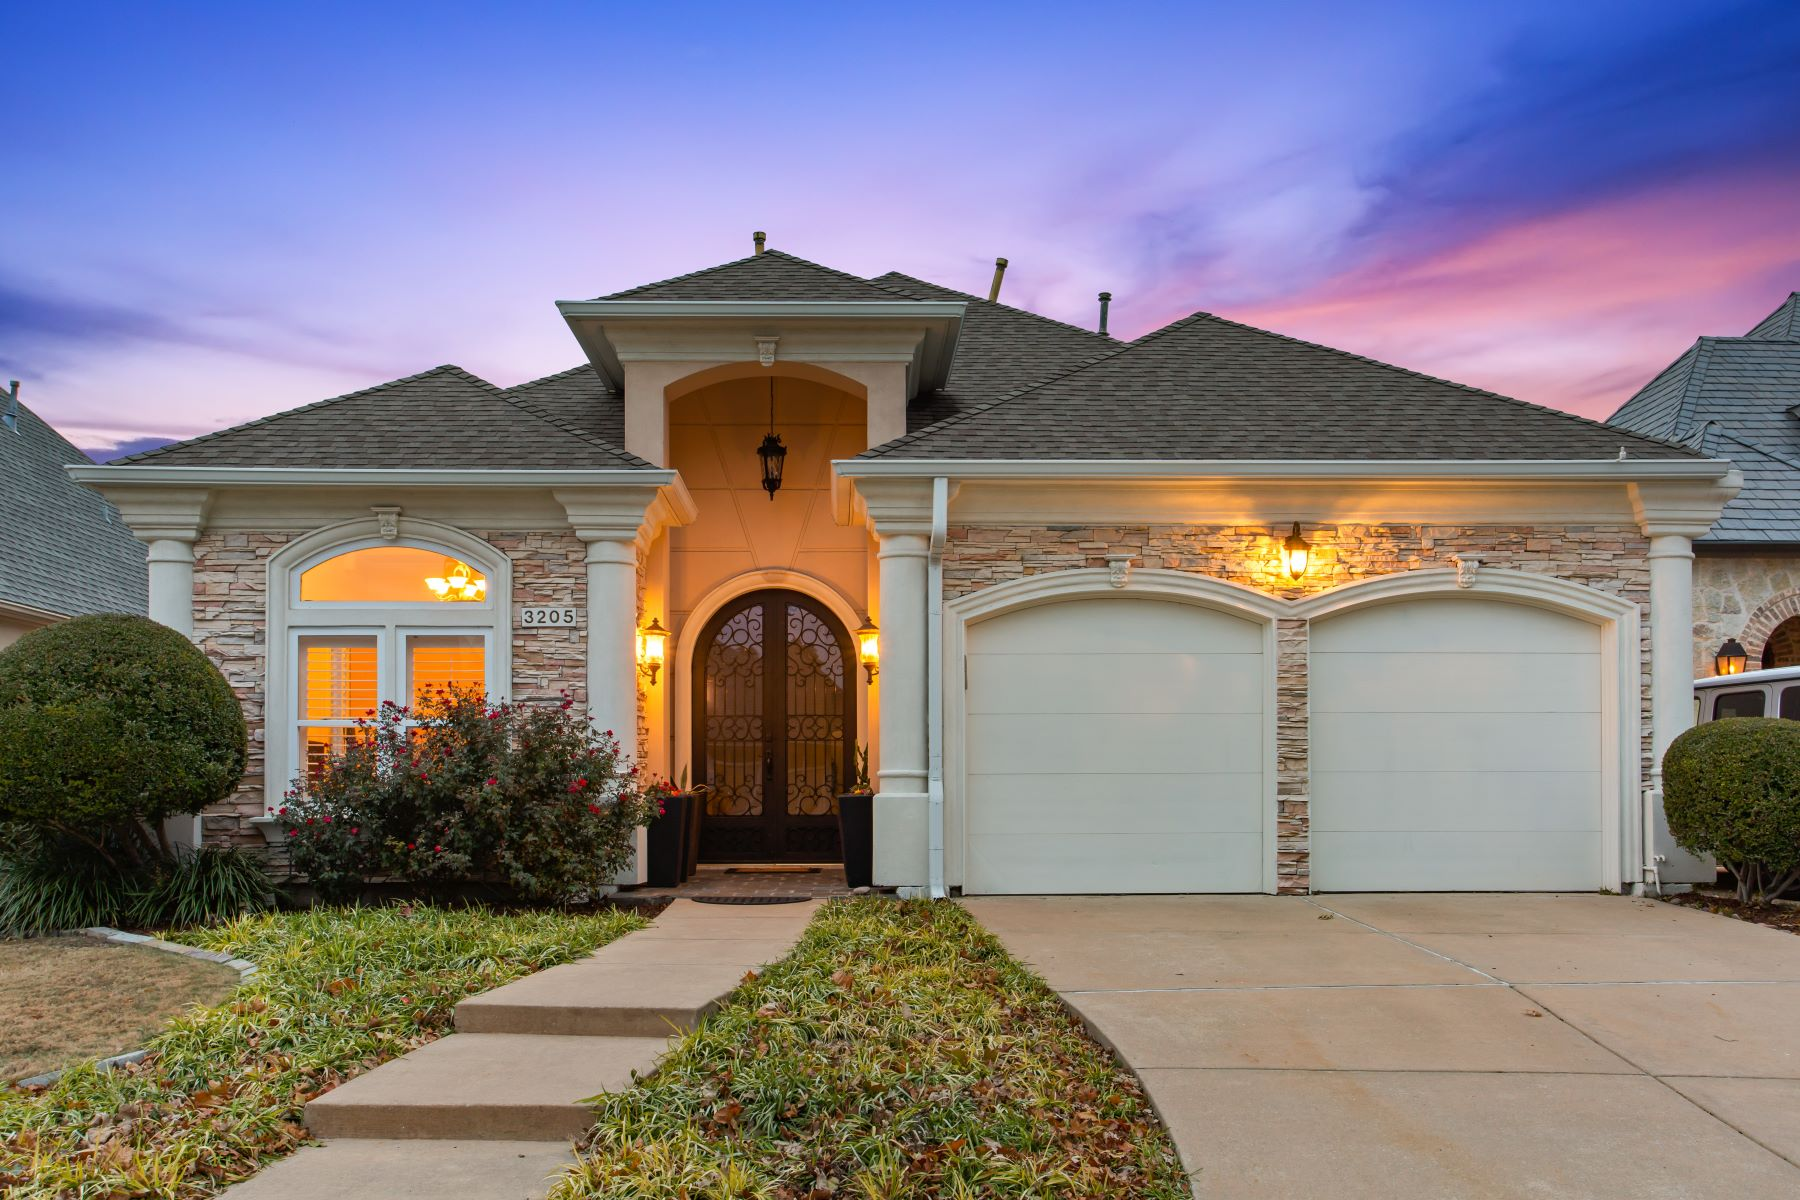 Single Family Homes for Sale at 3205 Oak Arbor, Plano 3205 Oak Arbor Drive Plano, Texas 75093 United States